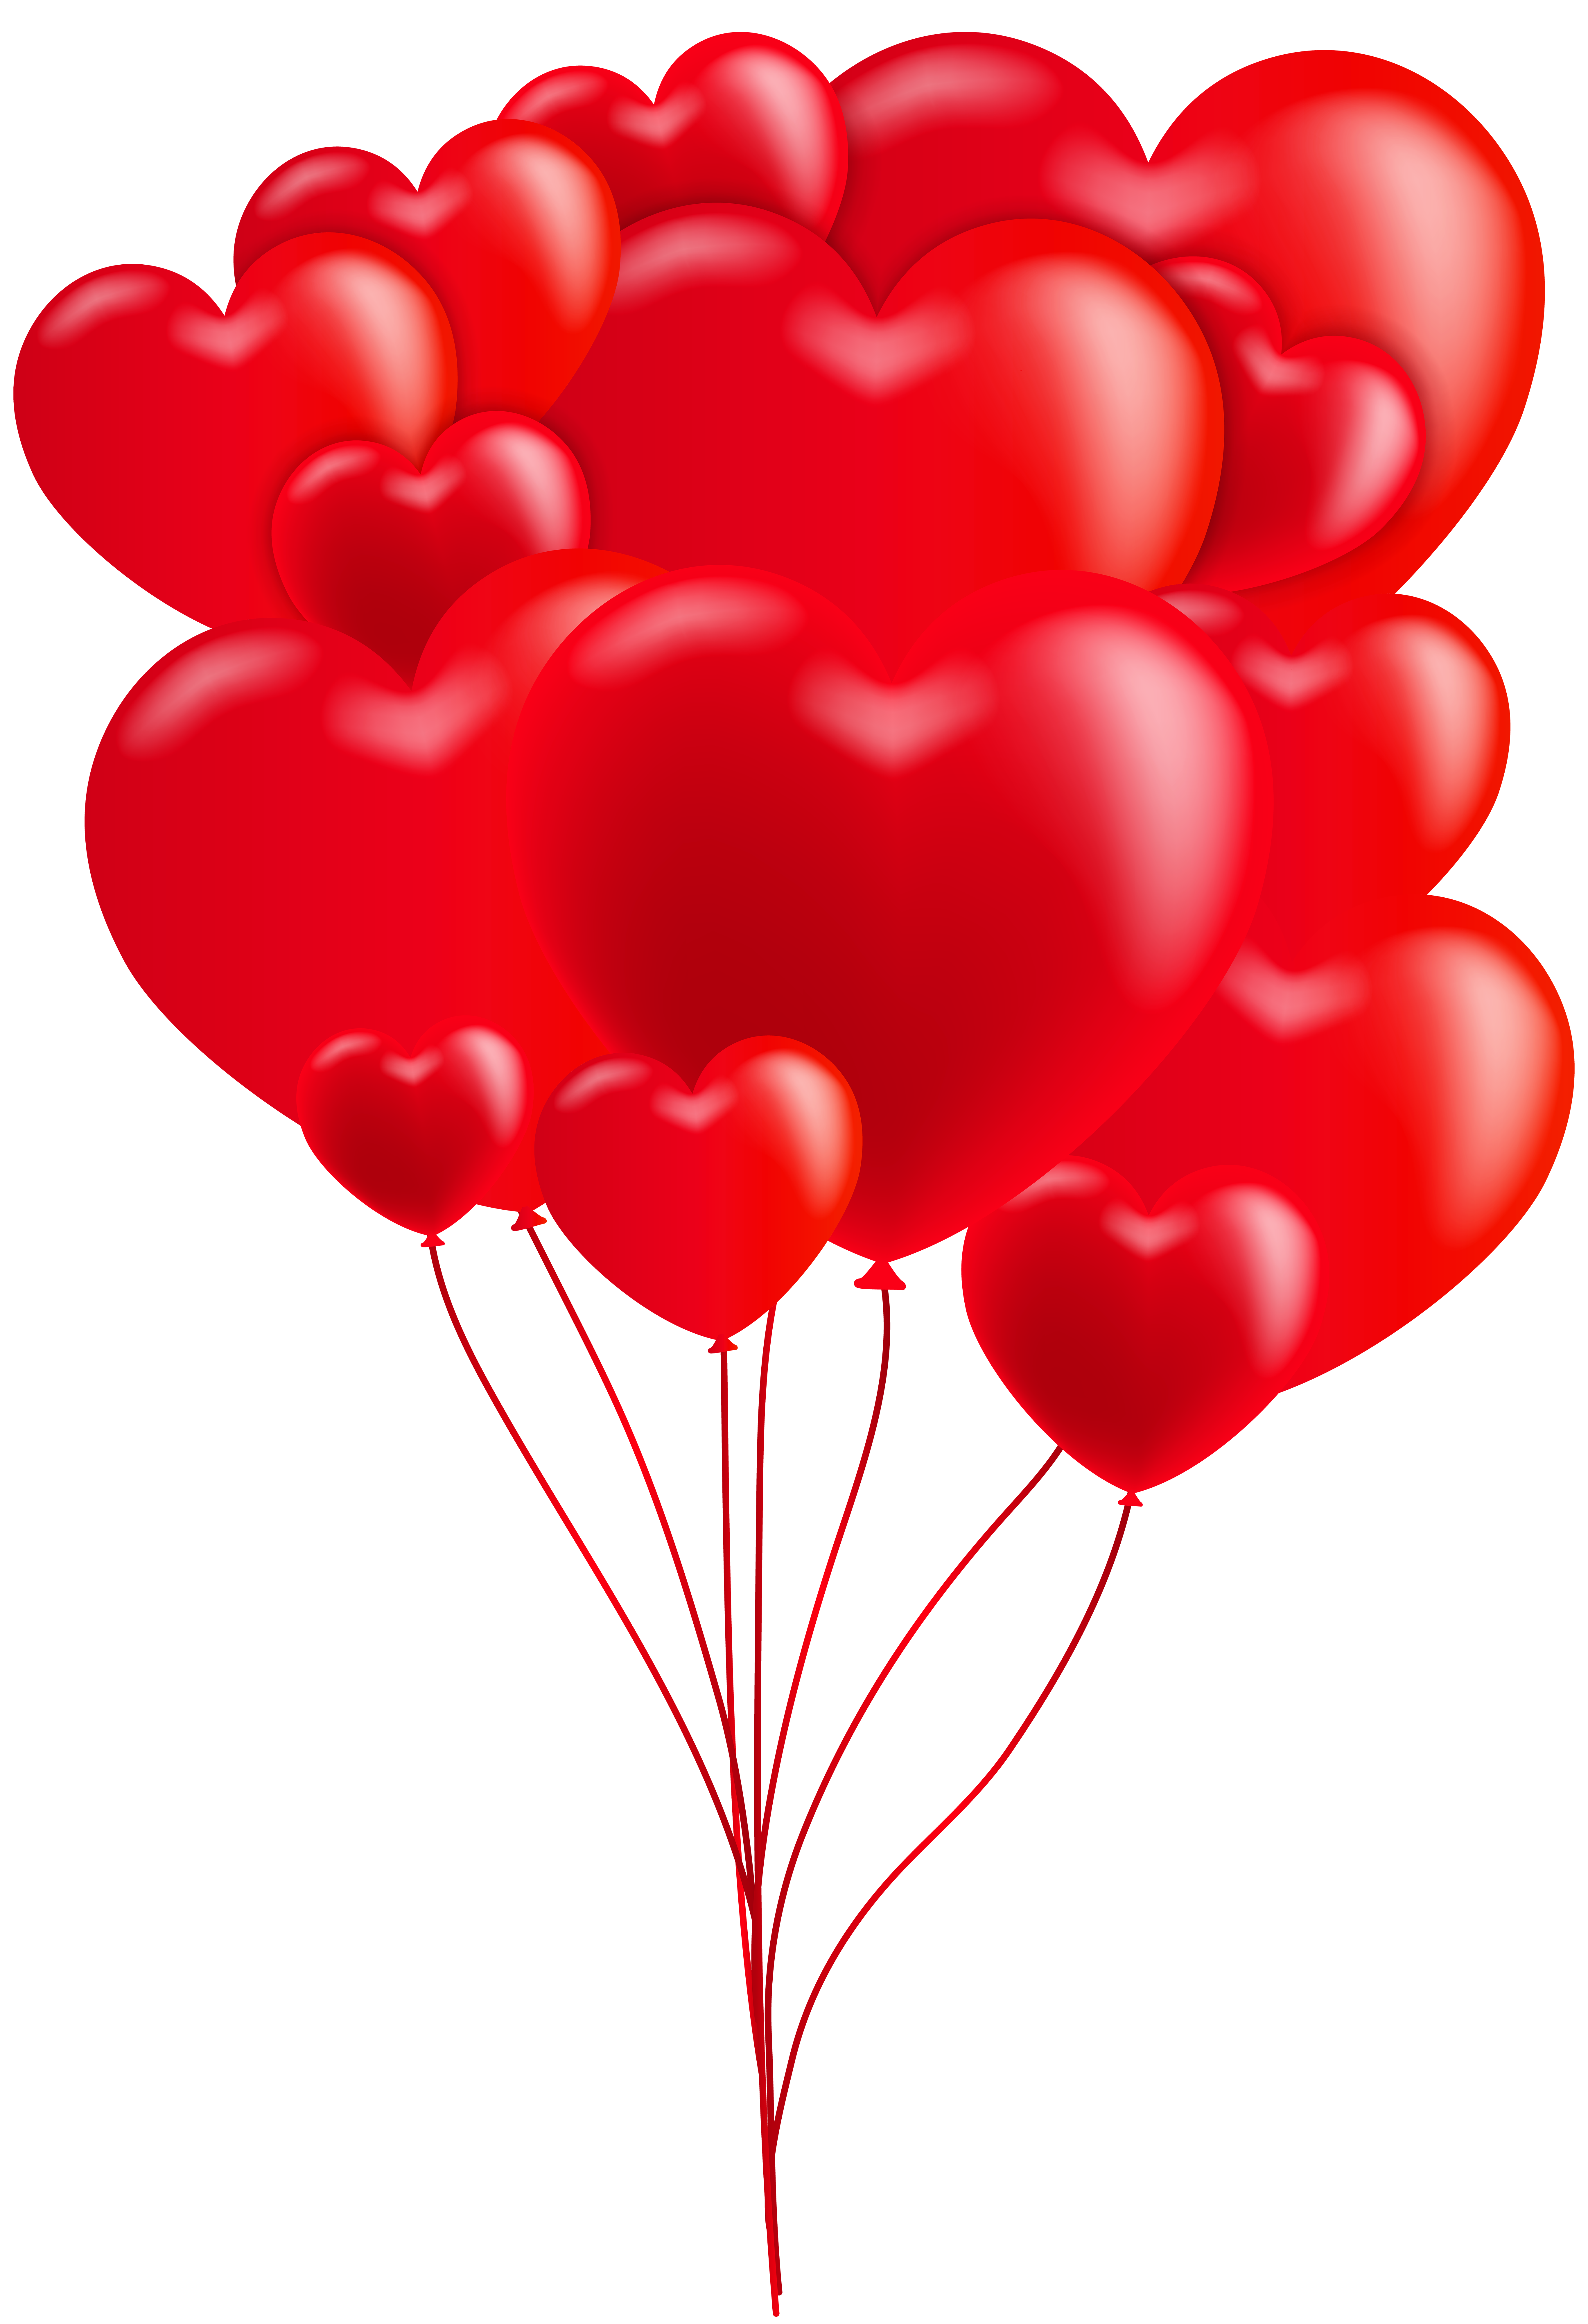 Valentine's day heart clipart png freeuse stock Valentine's Day Heart Balloons Red Clip Art Image | Gallery ... png freeuse stock